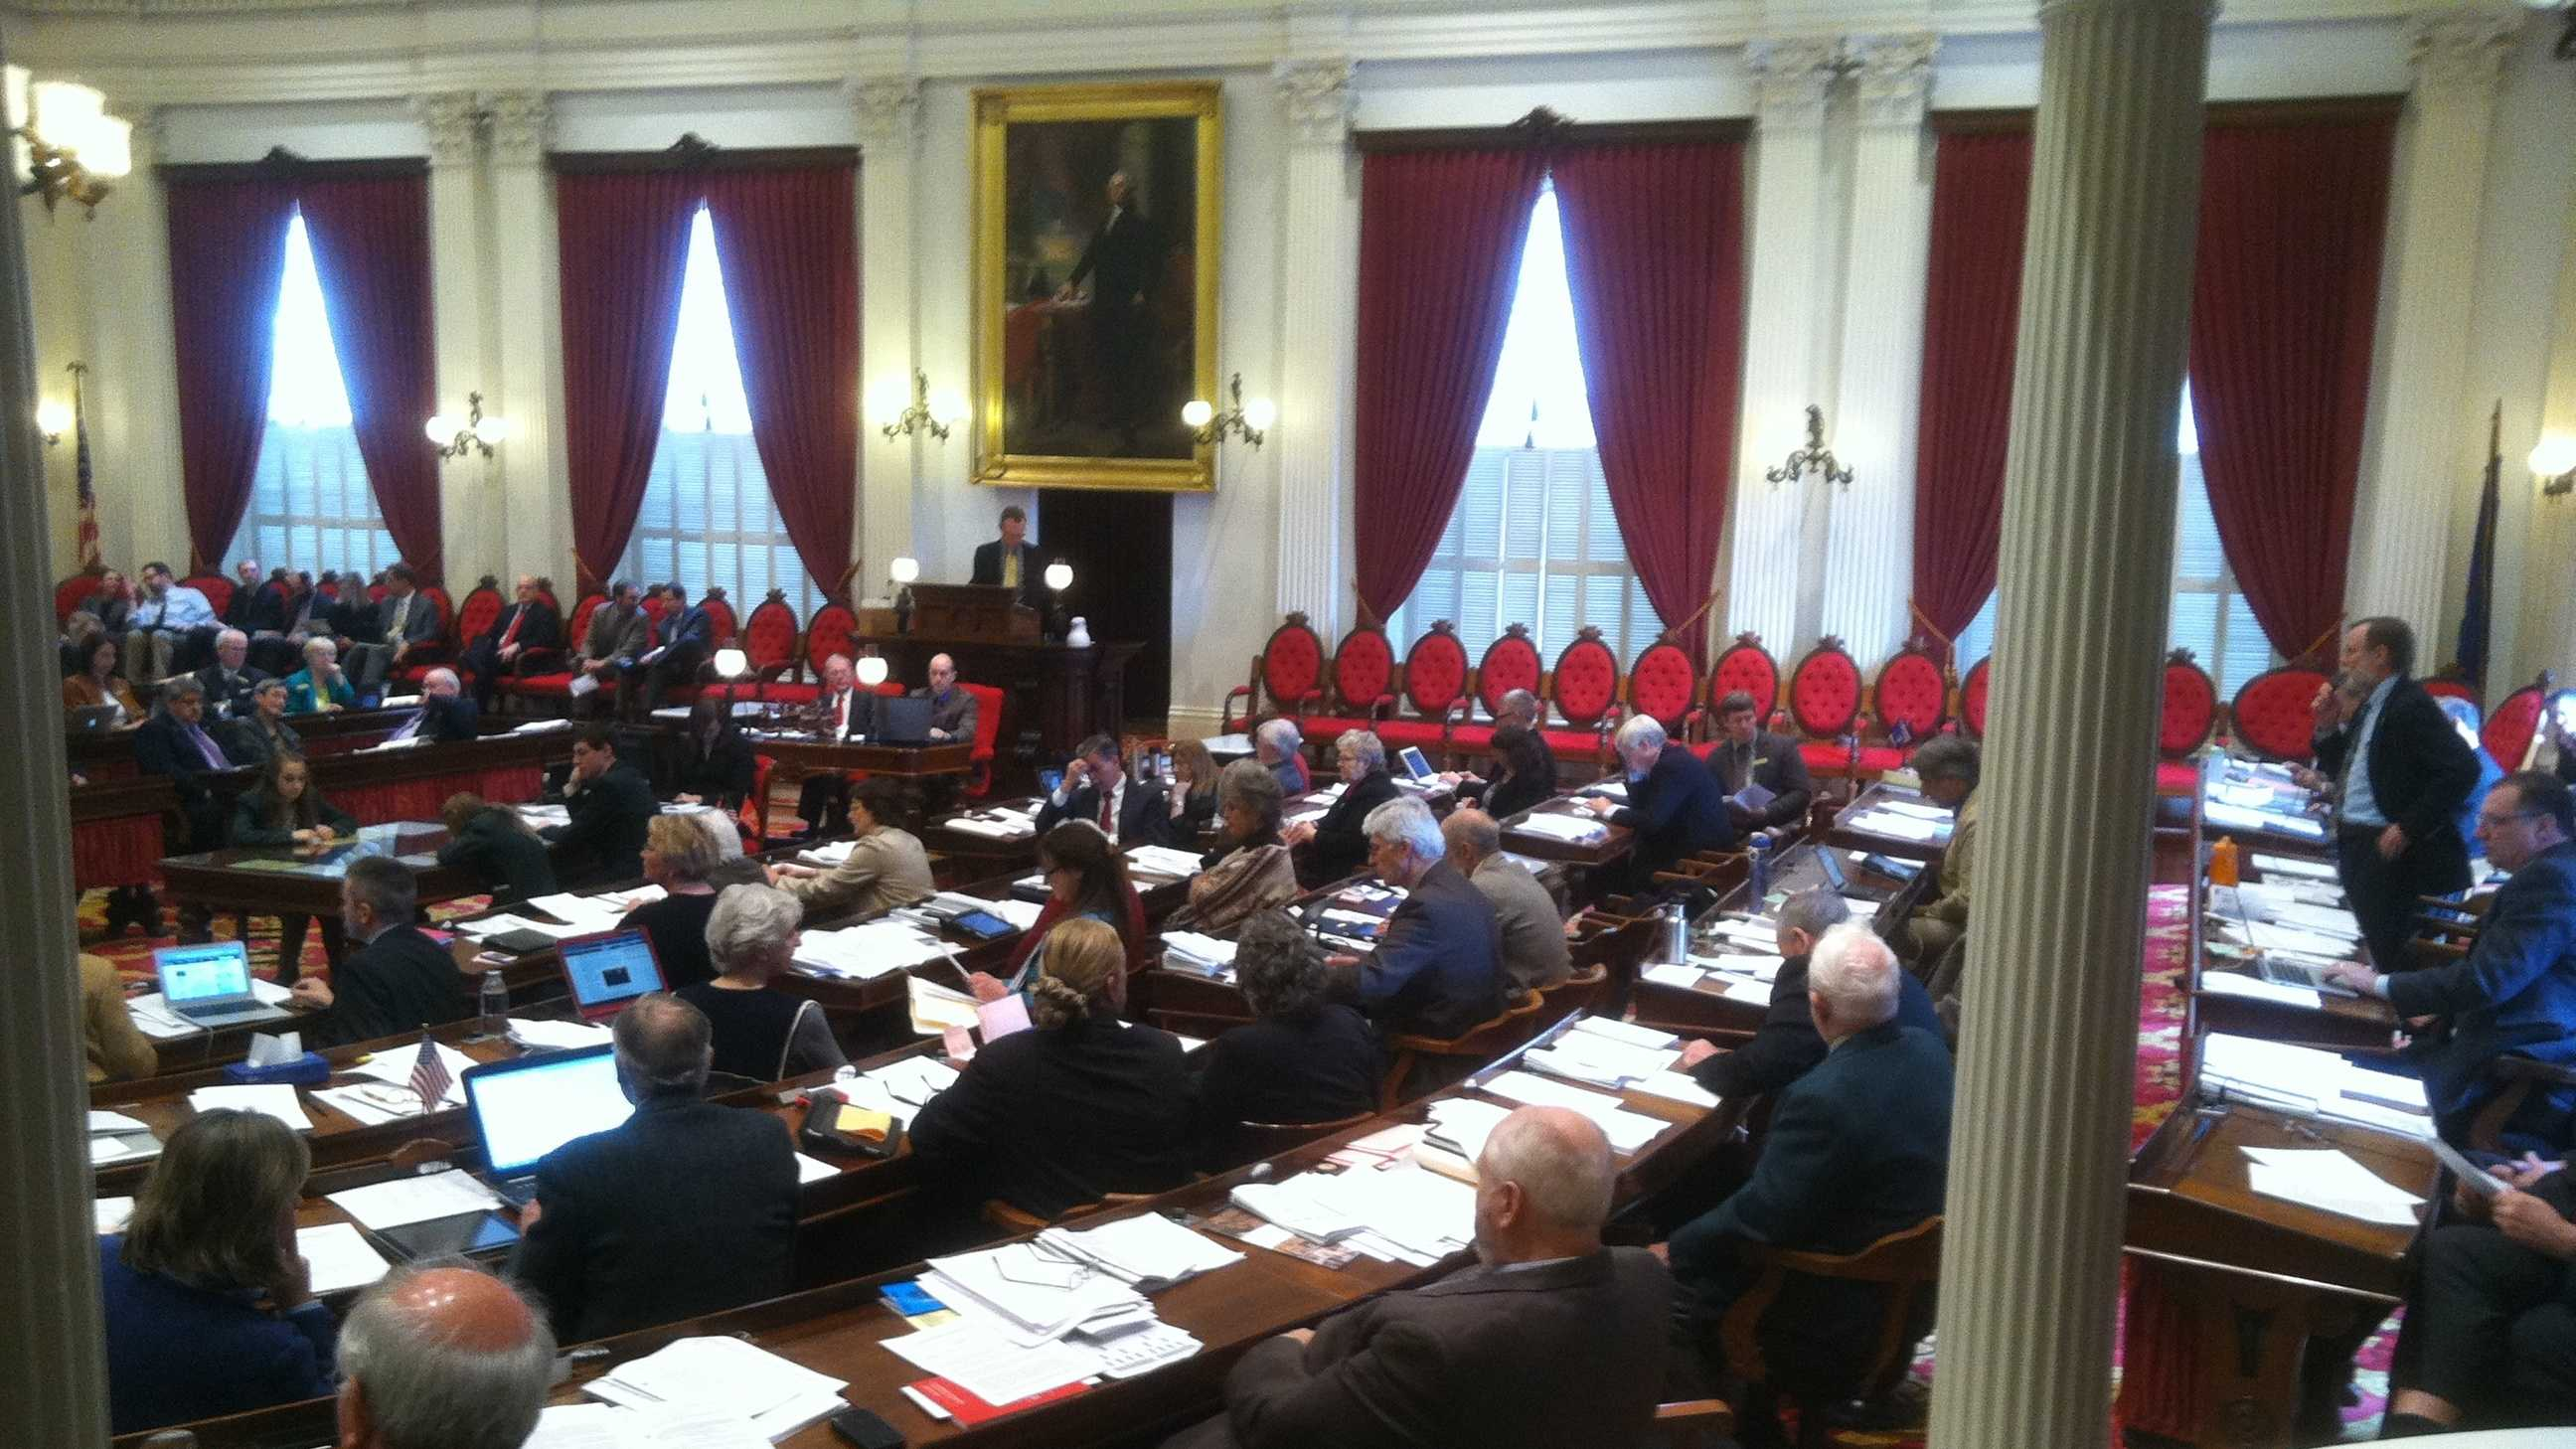 The Vermont House passed tax and spending bills in a marathon session Thursday.